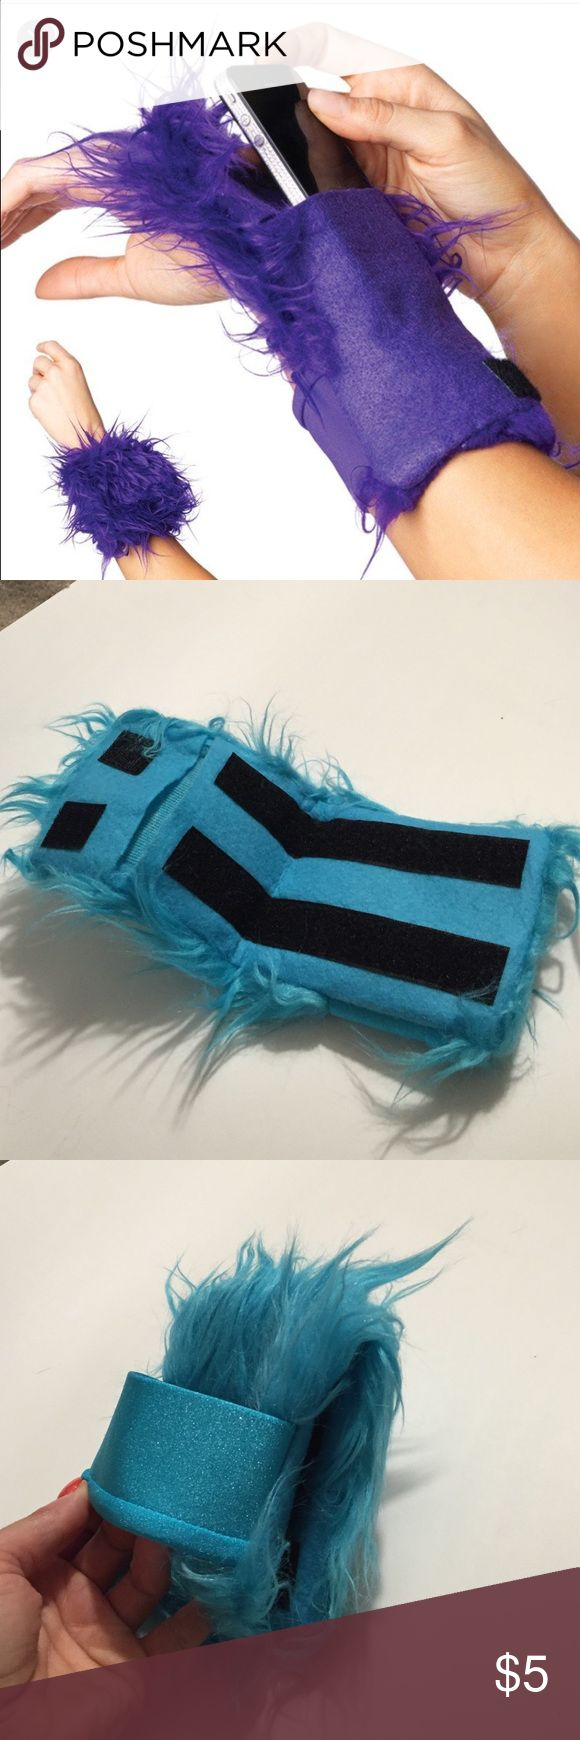 Furry wrist wallet! Rave ready! Easy way to hold phone and wallet! Never used! Tags removed. Needs a new home! Happy to bundle with other items for bigger discount! Leg Avenue  Accessories